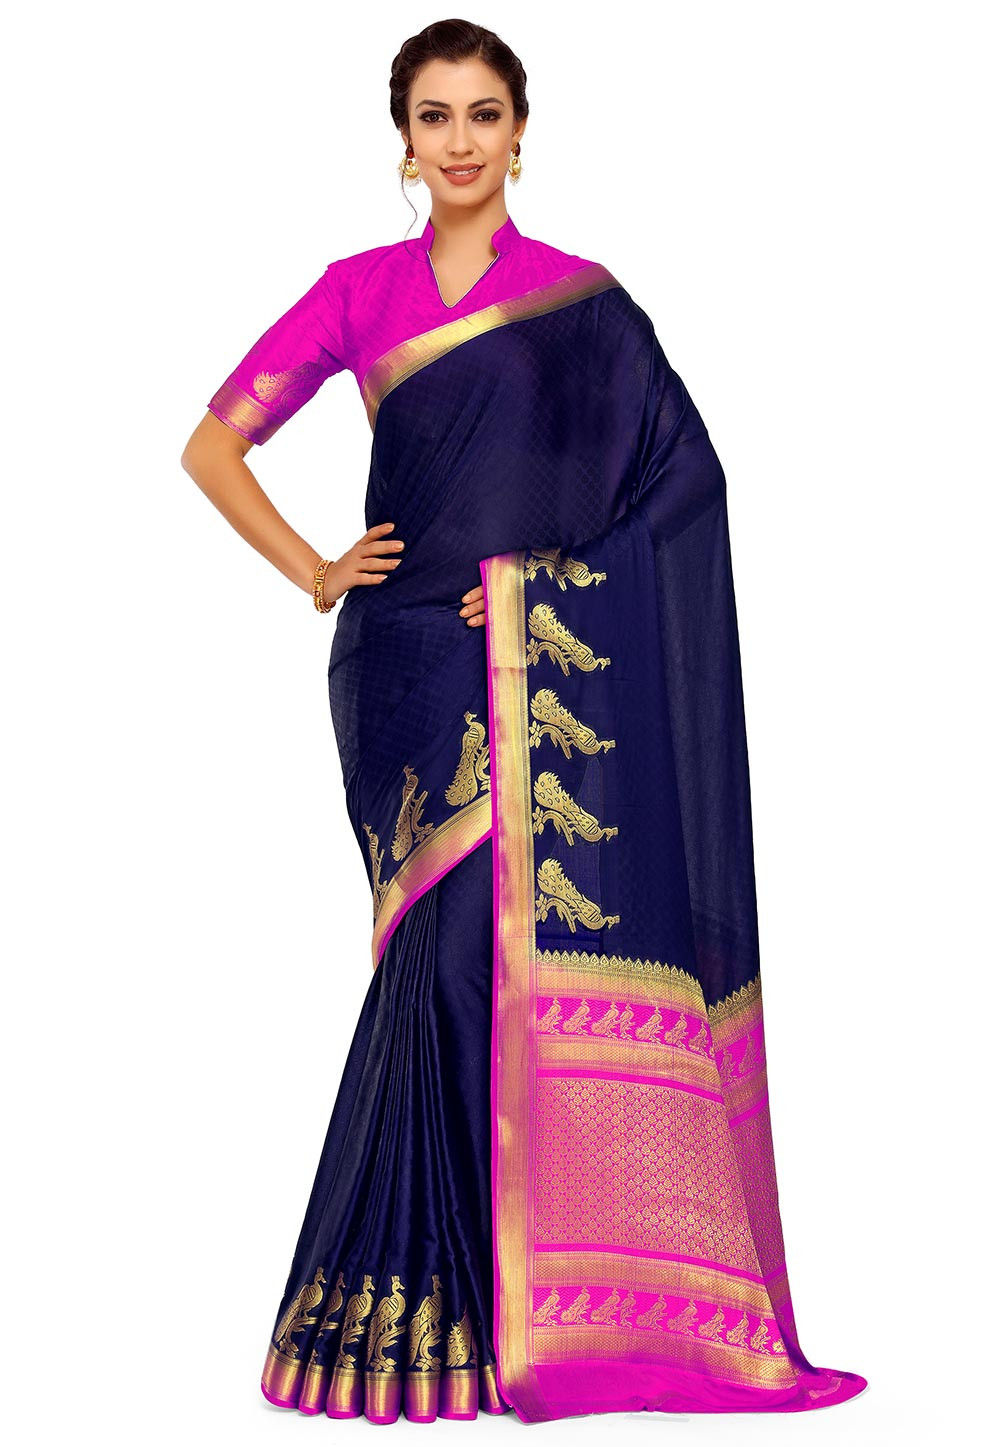 Woven Crepe Jacquard Saree in Navy Blue